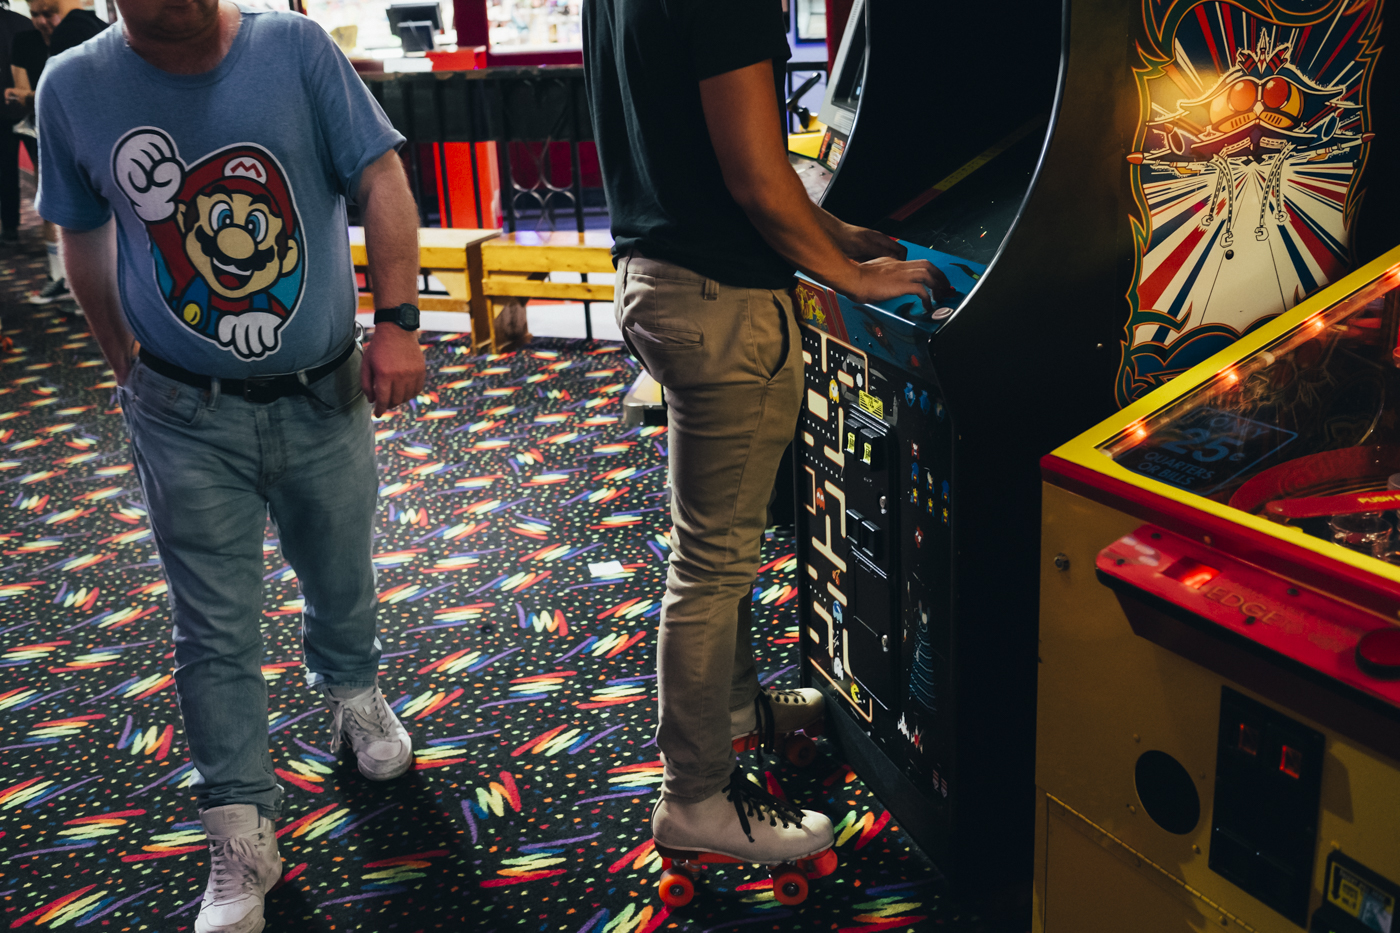 Particular attention has been paid to preserving vintage games such as arcade games